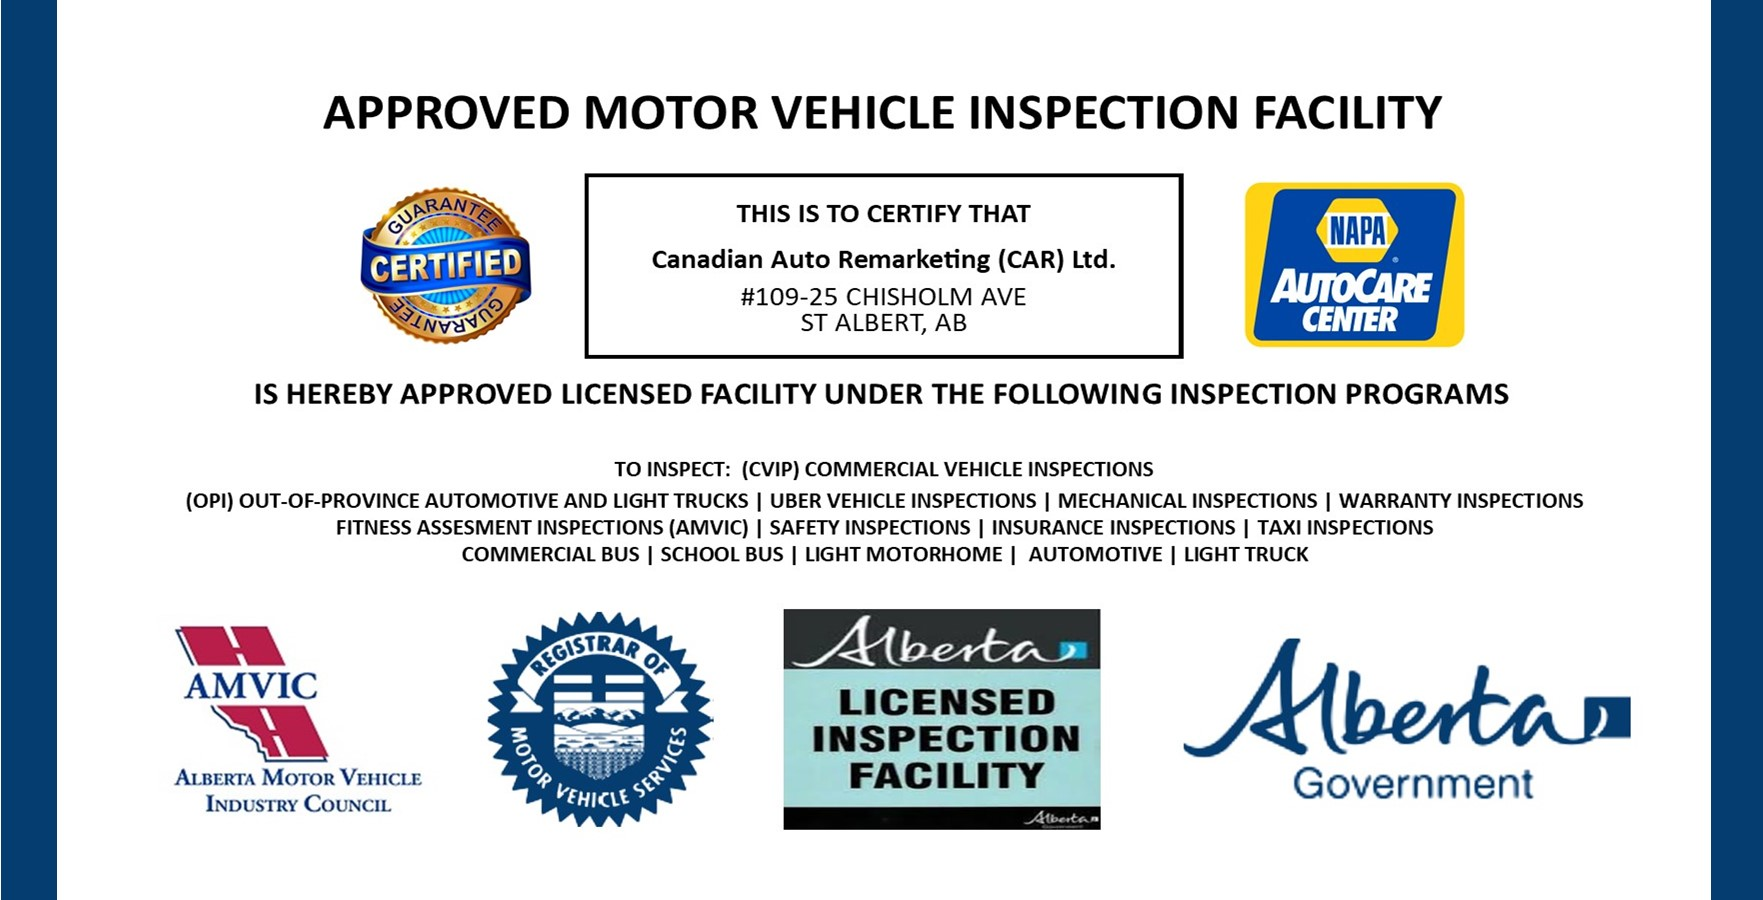 We are a licensed out-of-province vehicle inspection facility